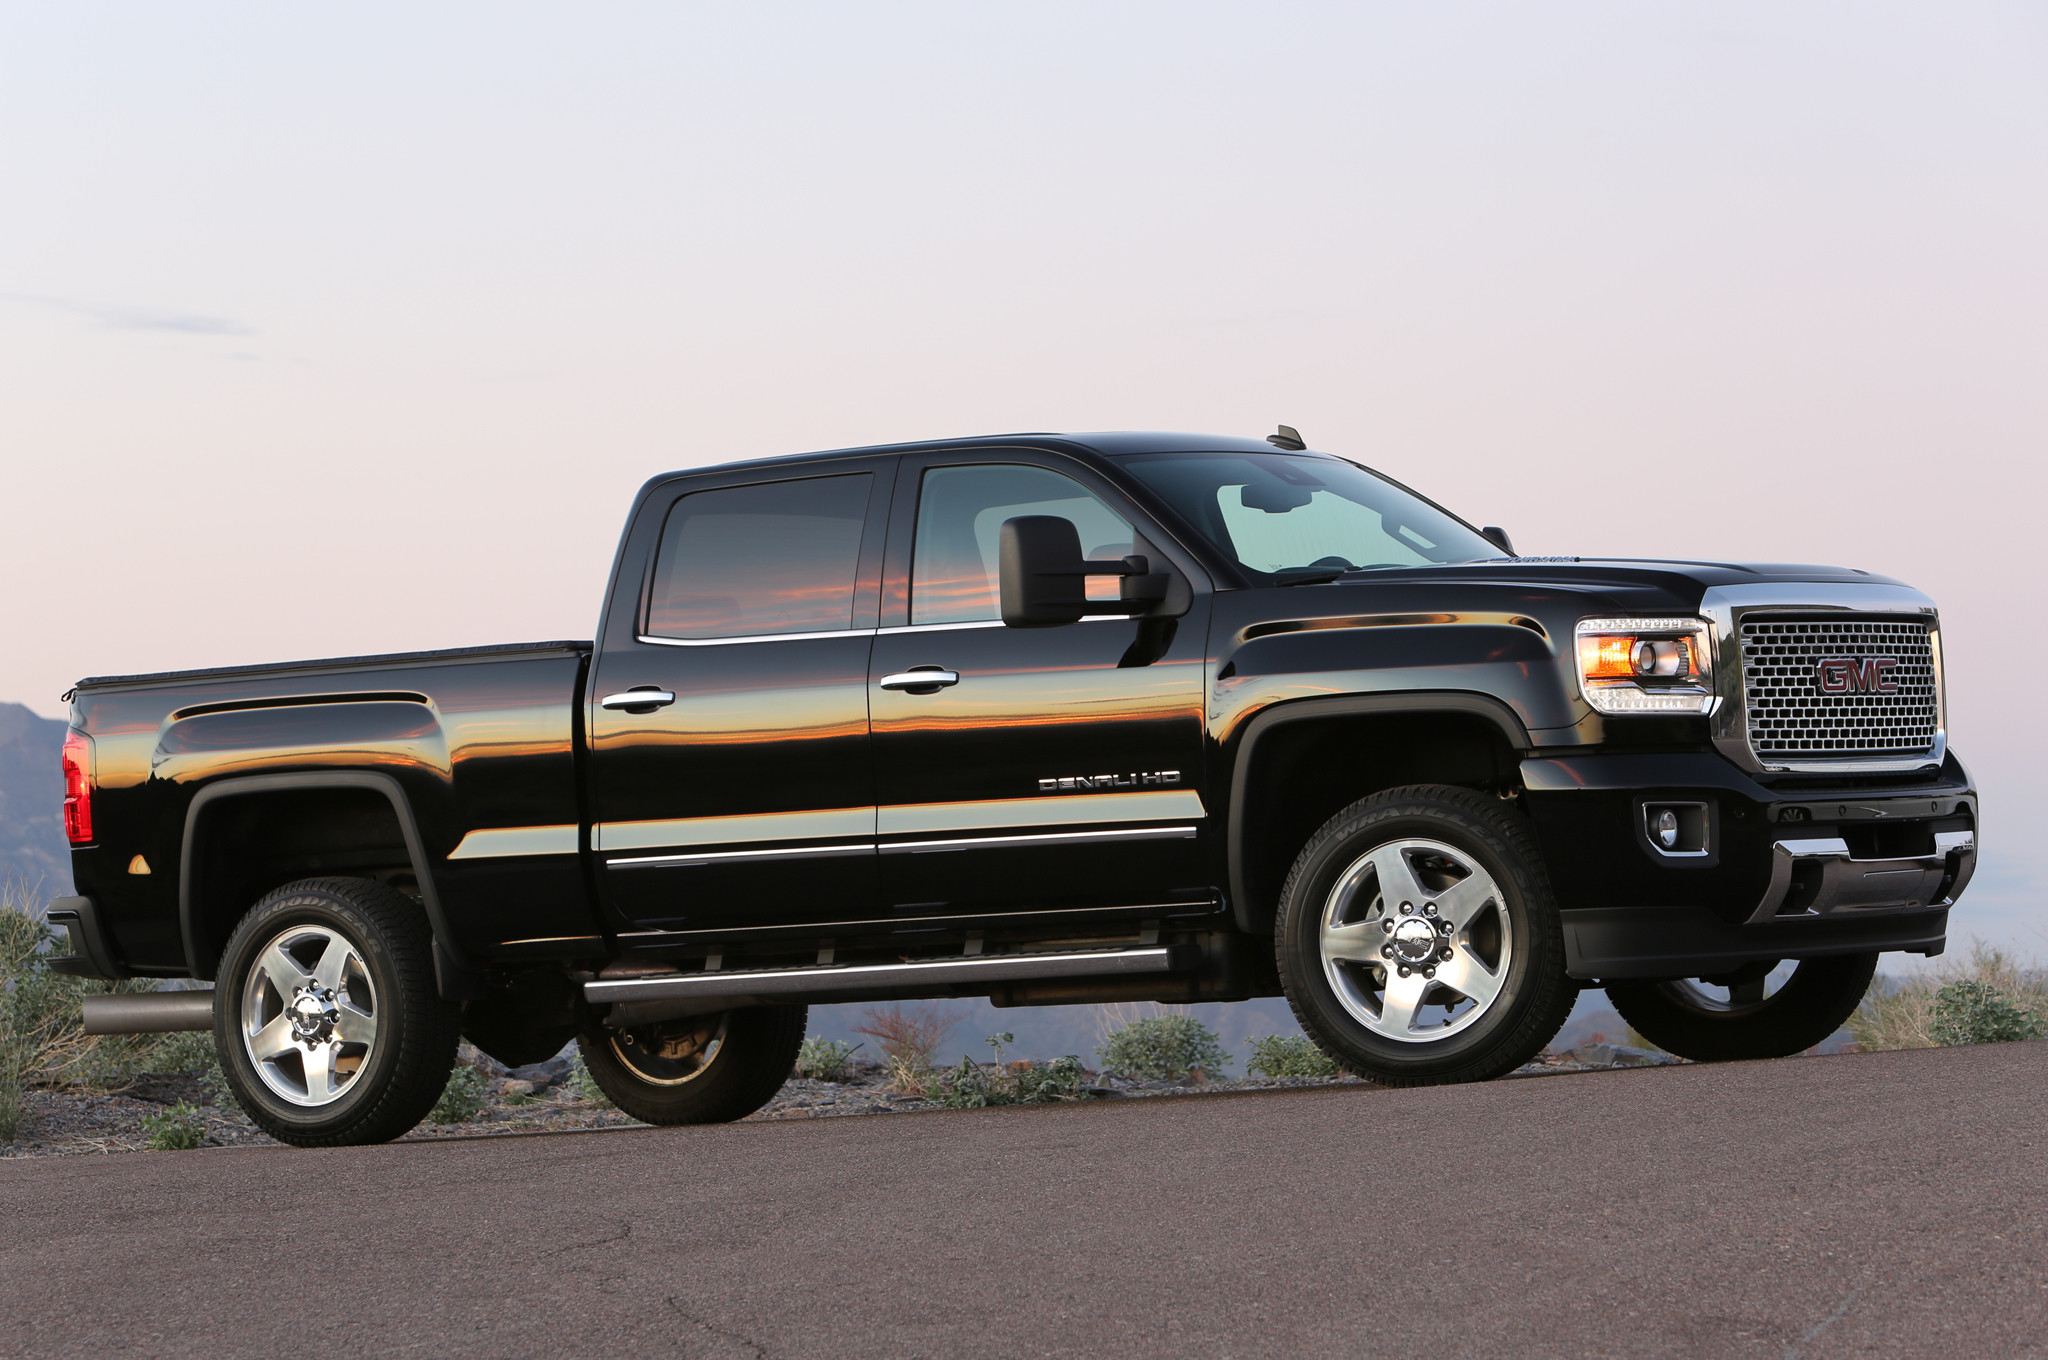 moonroof vehicles will we duramax sell fee pre a apply export leather and holder tag sale lien itm denali vehicle dmv navigation with national new not for owned to sierra diesel title service gmc